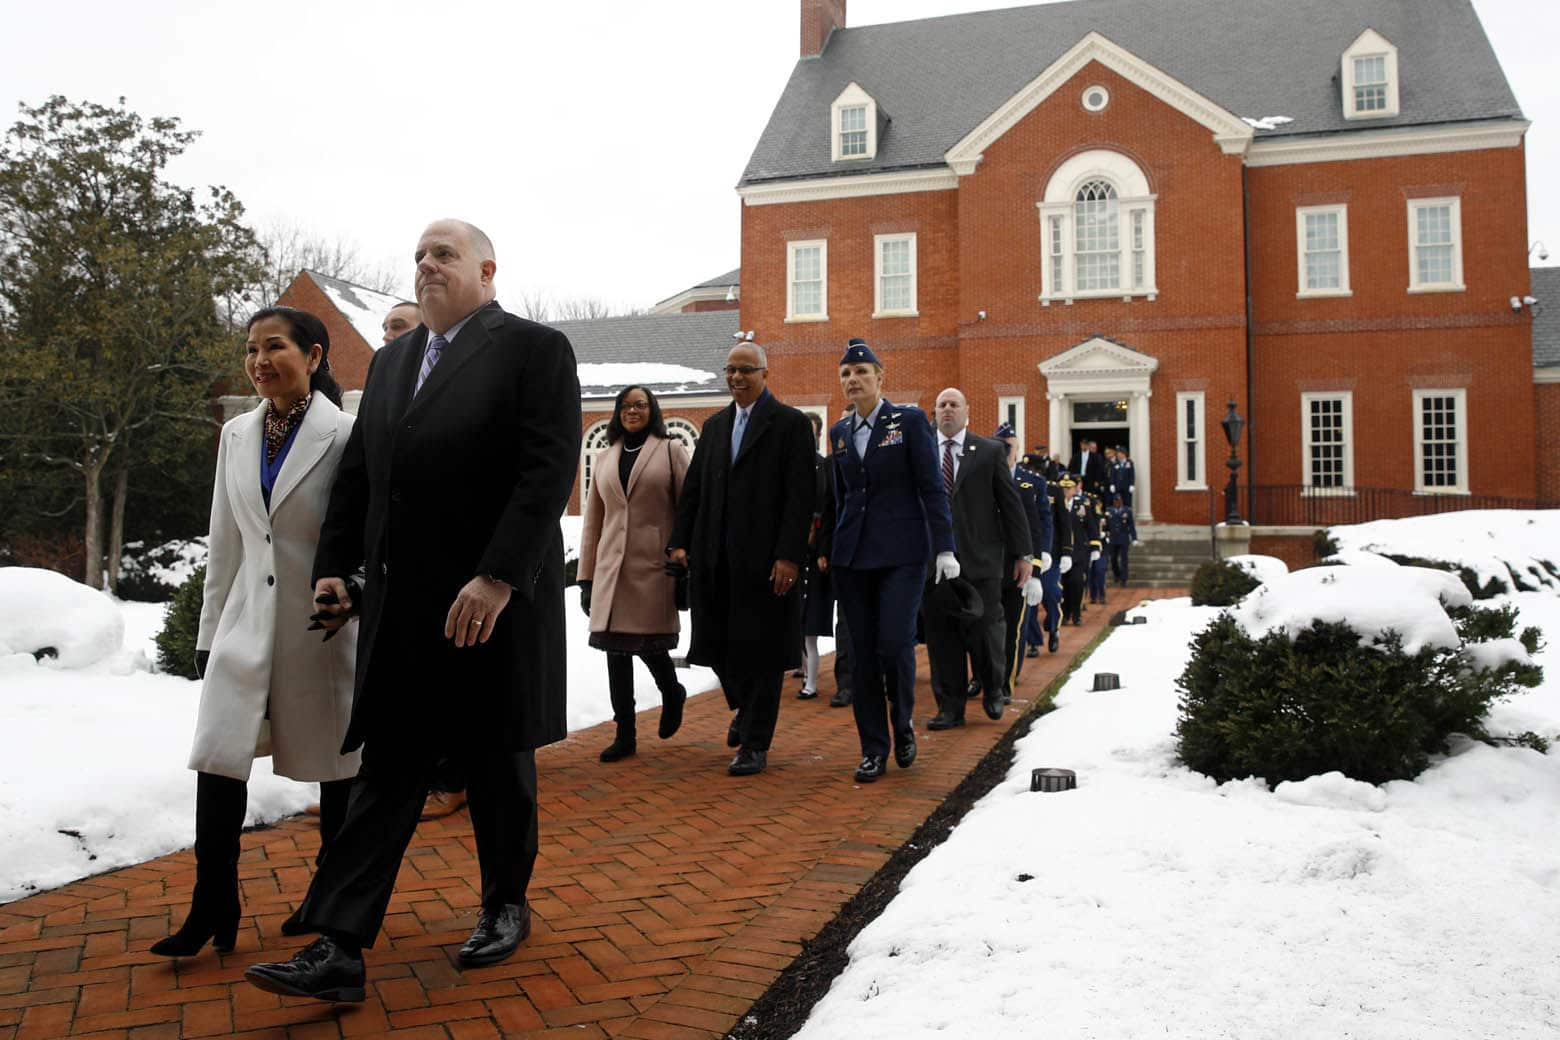 Maryland Gov. Larry Hogan, second from left, departs Government House, the Governor's mansion, with first lady Yumi Hogan before his inauguration ceremony, Wednesday, Jan. 16, 2019, in Annapolis, Md. Hogan is the first Republican governor to be re-elected in the state since the 1950s. (AP Photo/Patrick Semansky)